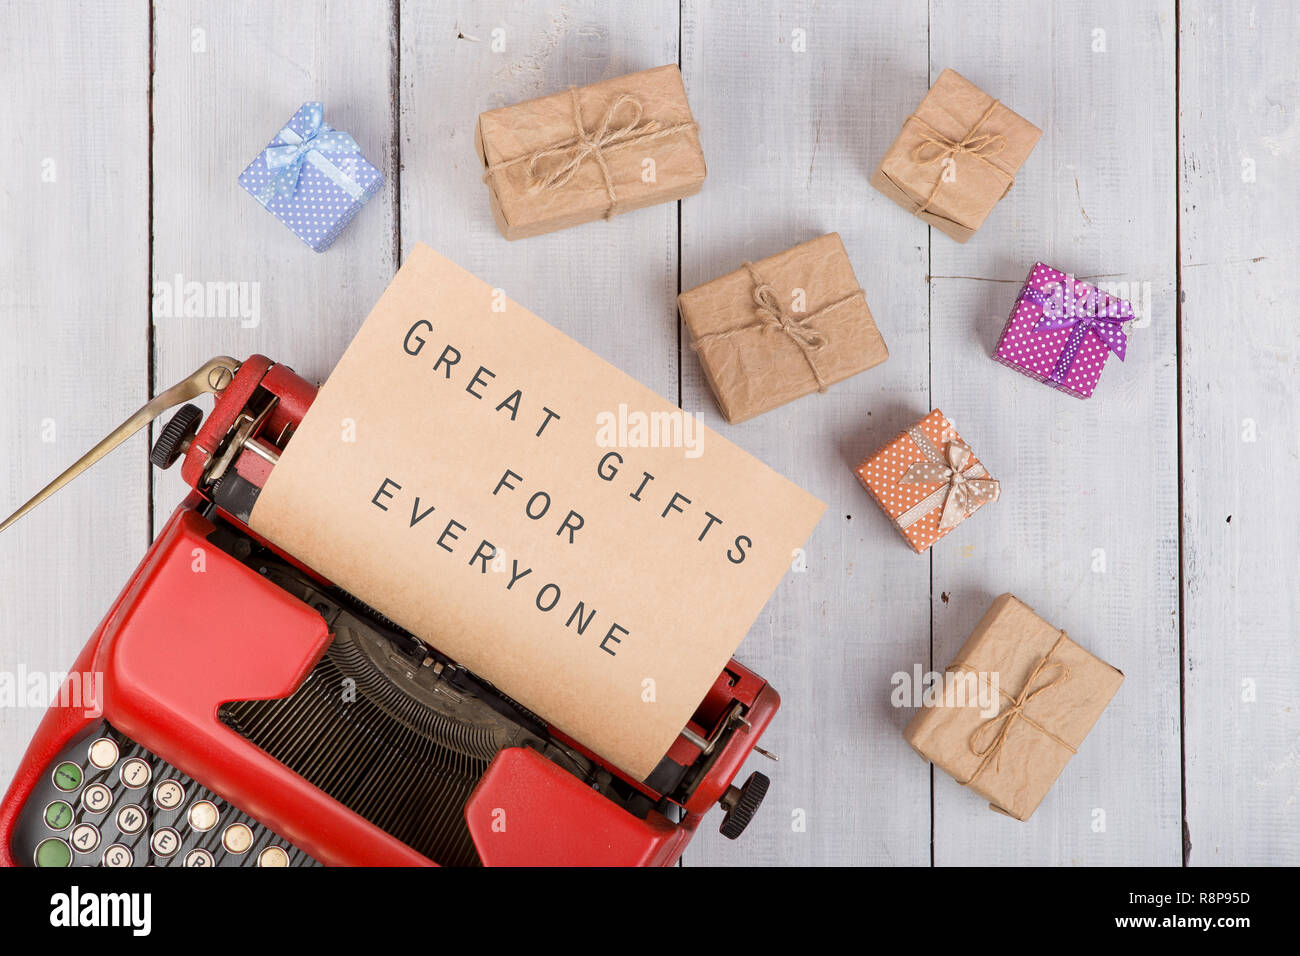 Holidays concept - red typewriter with craft paper and text 'Great gifts for everyone', gift boxes on white wooden background - Stock Image